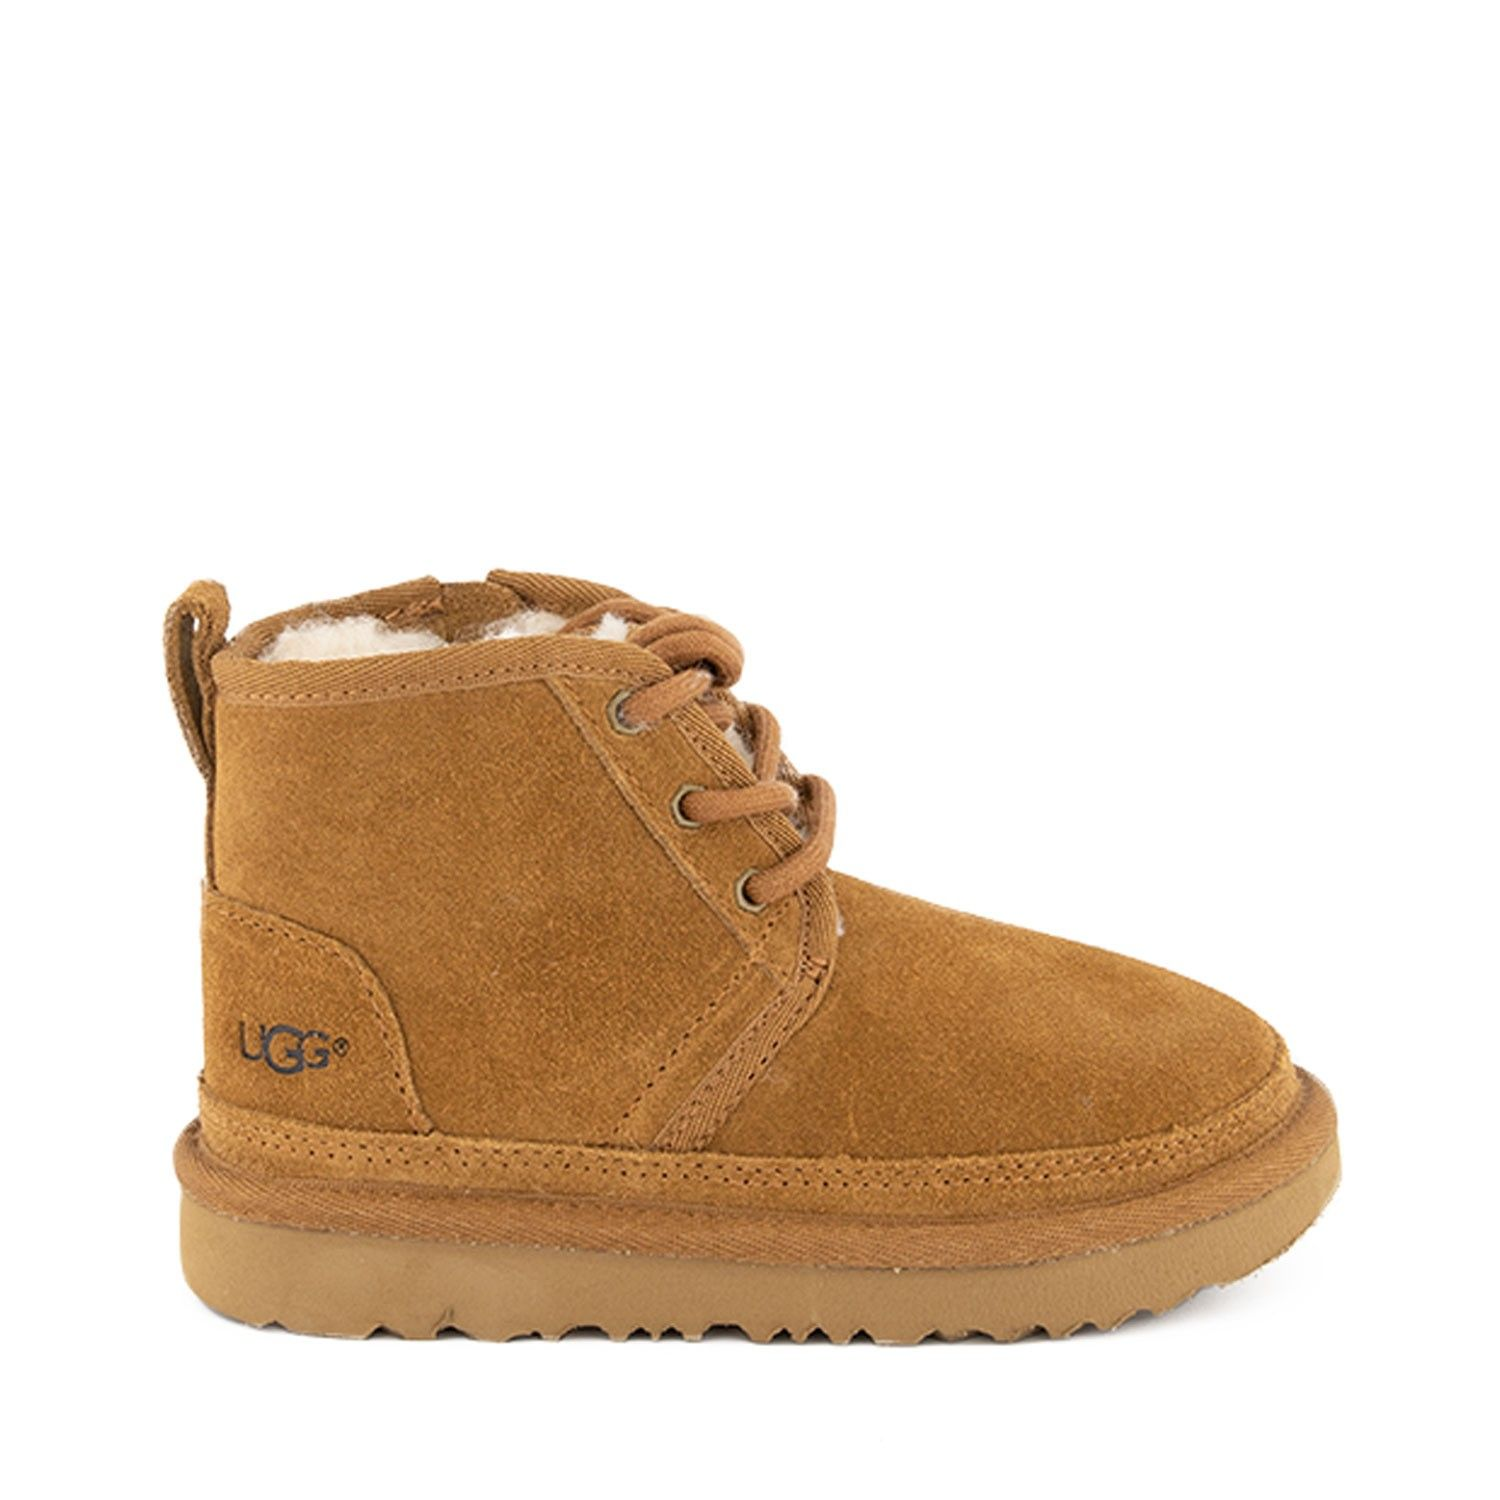 Picture of UGG 1017320T kids shoes camel